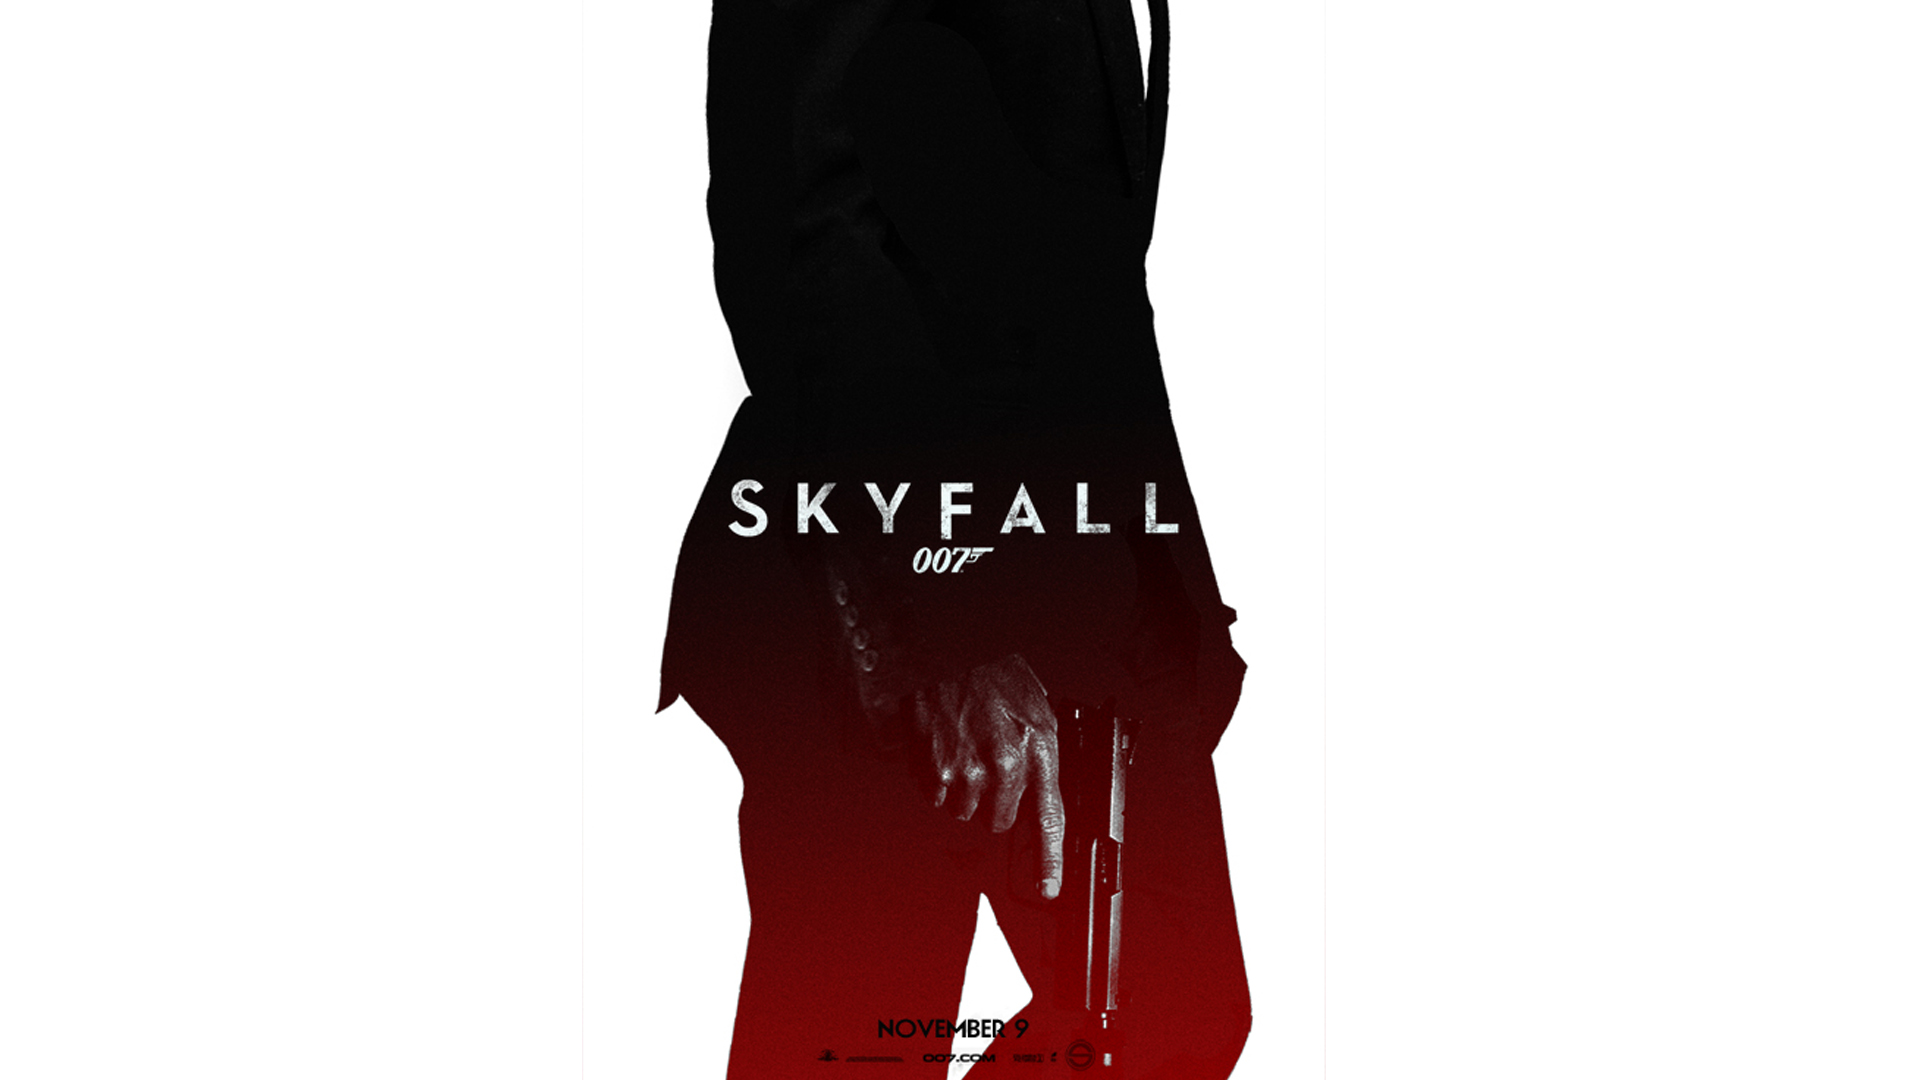 james bond 007 skyfall wallpaper 9 | wallpapersbq